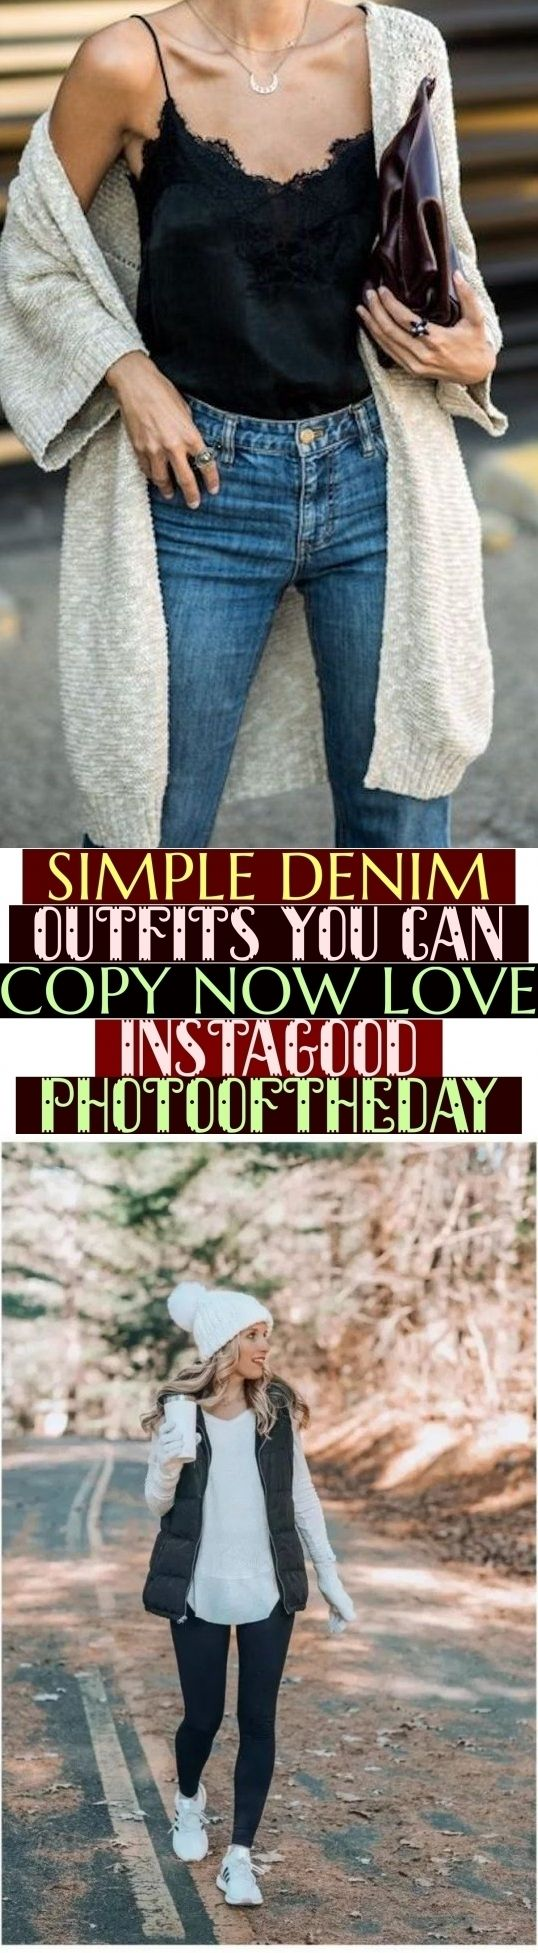 Simple Denim Outfits You Can Copy Now Love Instagood Photooftheday # #love #pinterestgood #photoofth...